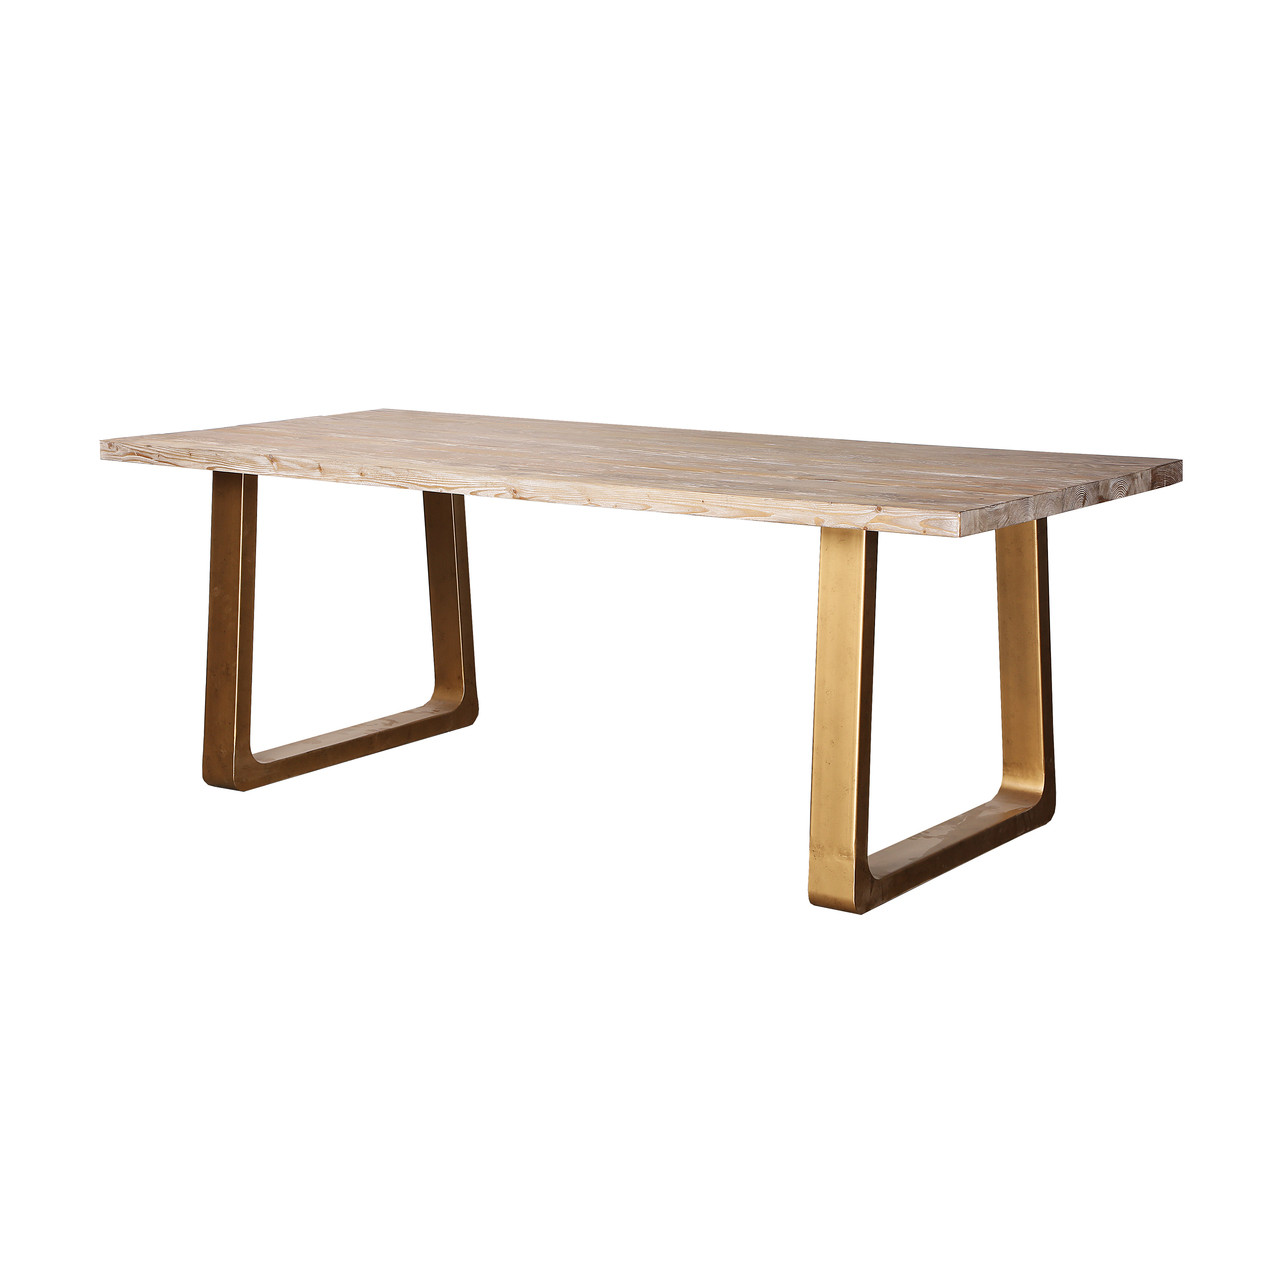 Reclaimed Wood Dining Table Metal Legs(KD)-white wash